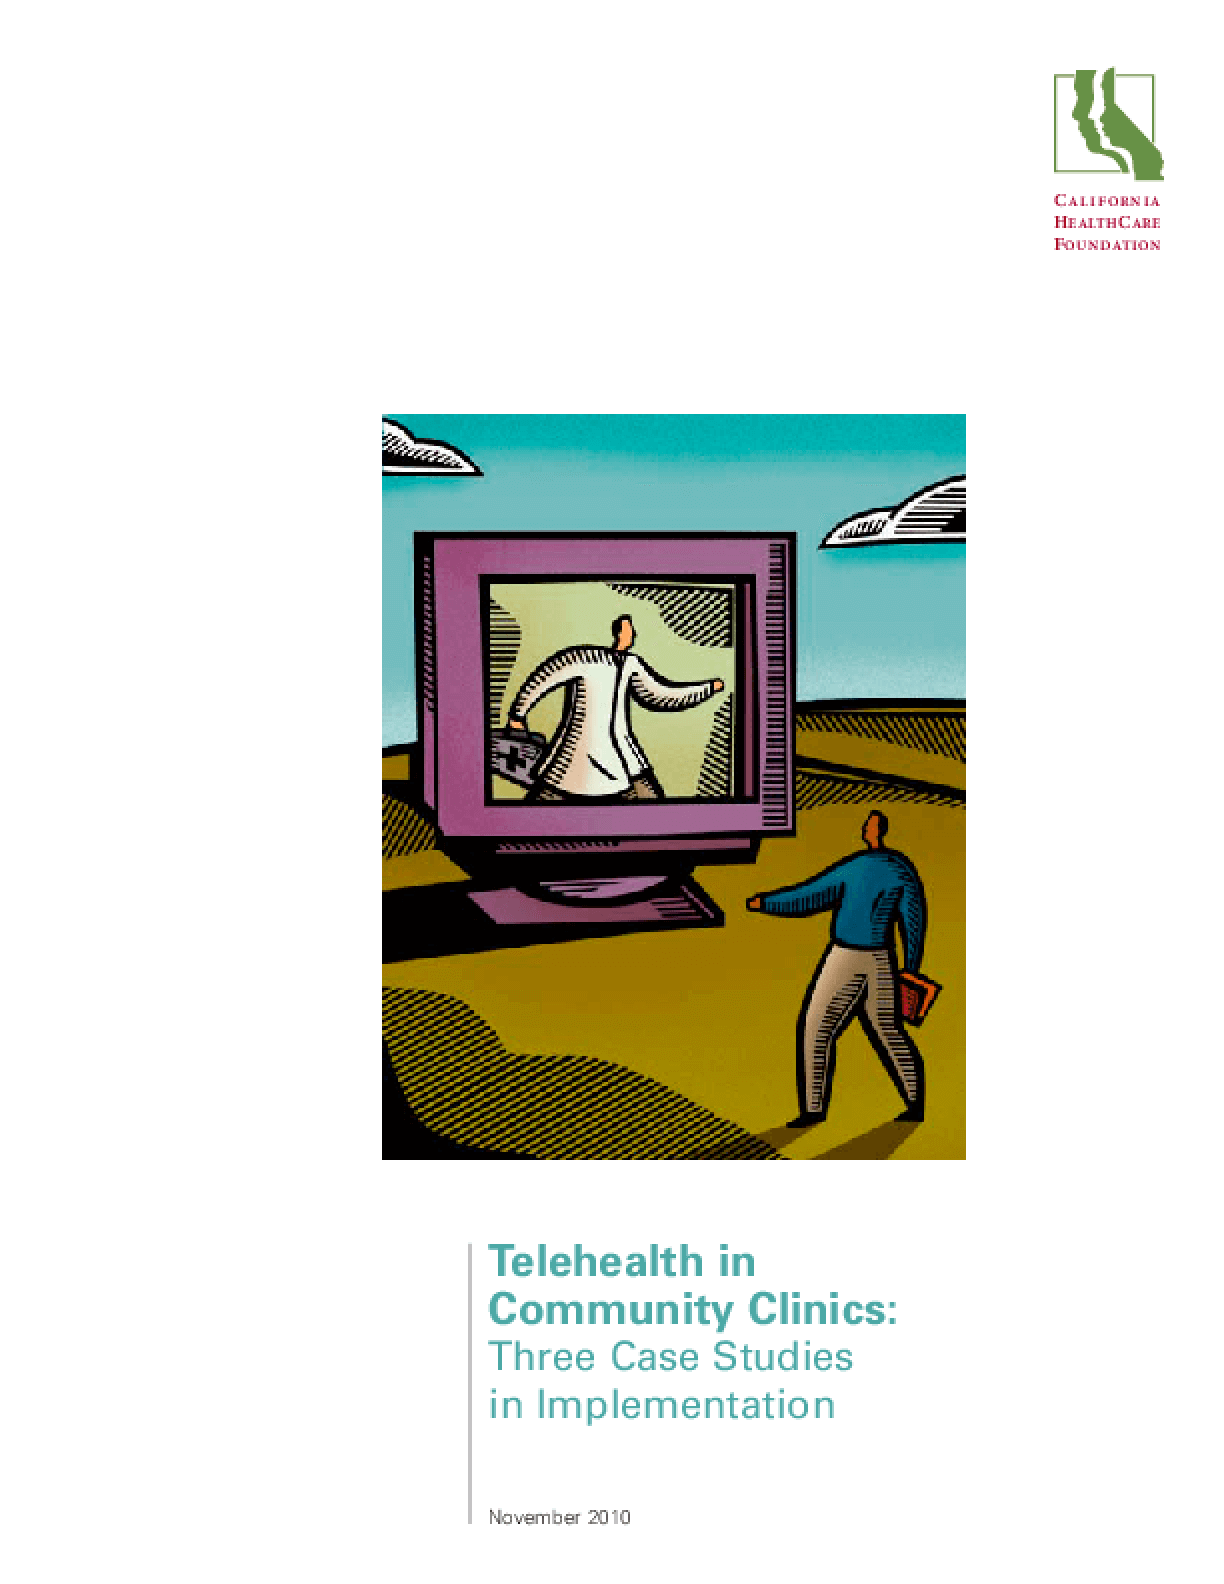 Telehealth in Community Clinics: Three Case Studies in Implementation